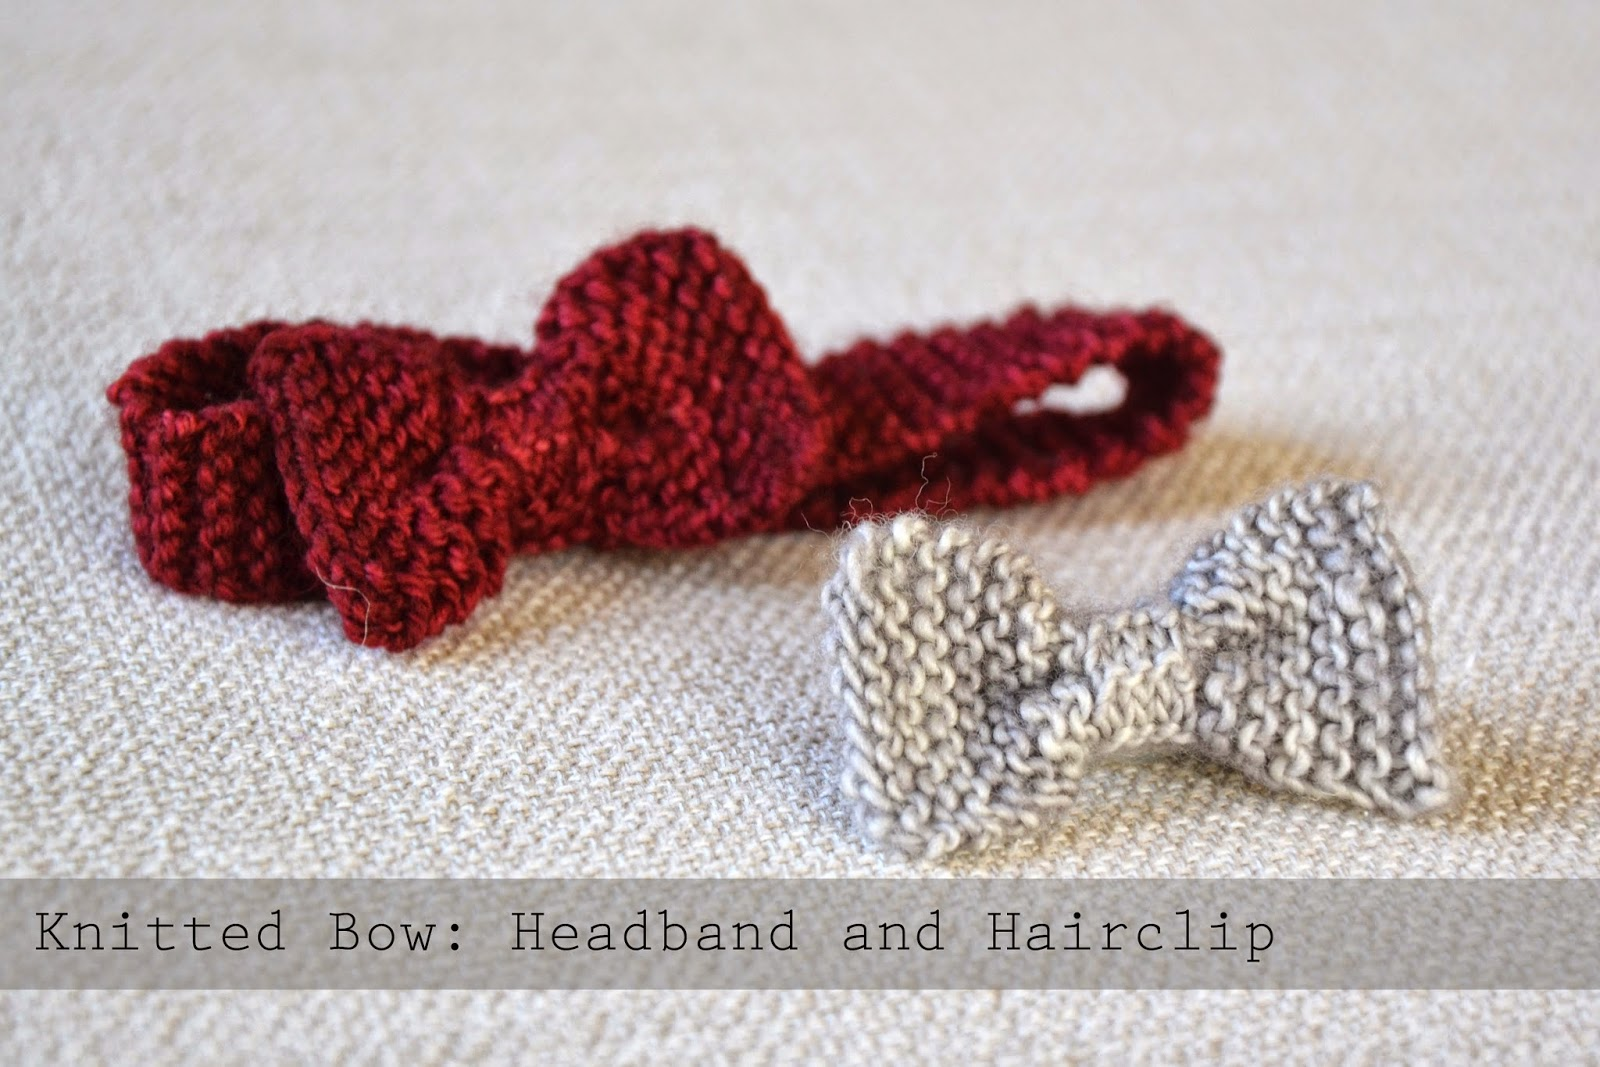 Spicy Jellybean Kids : A little freebie: Knitted Bow Headband and ...